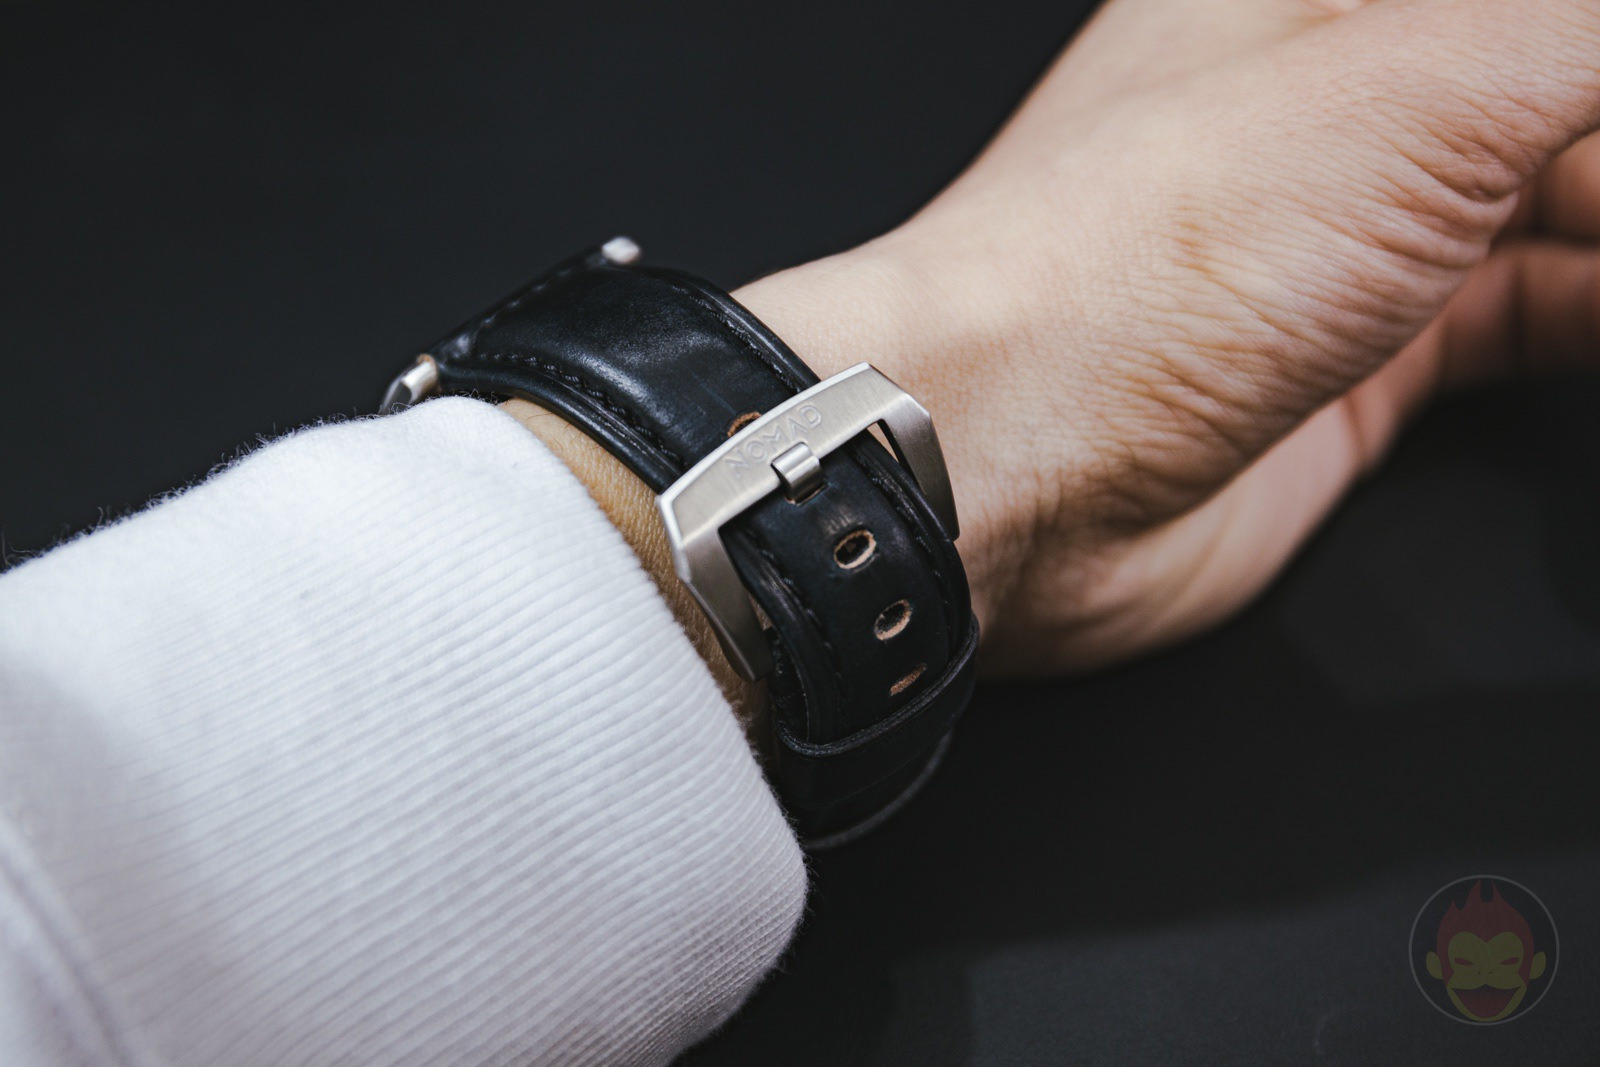 Apple-Watch-NOMAD-Shell-Cordovan-Strap-Review-08.jpg